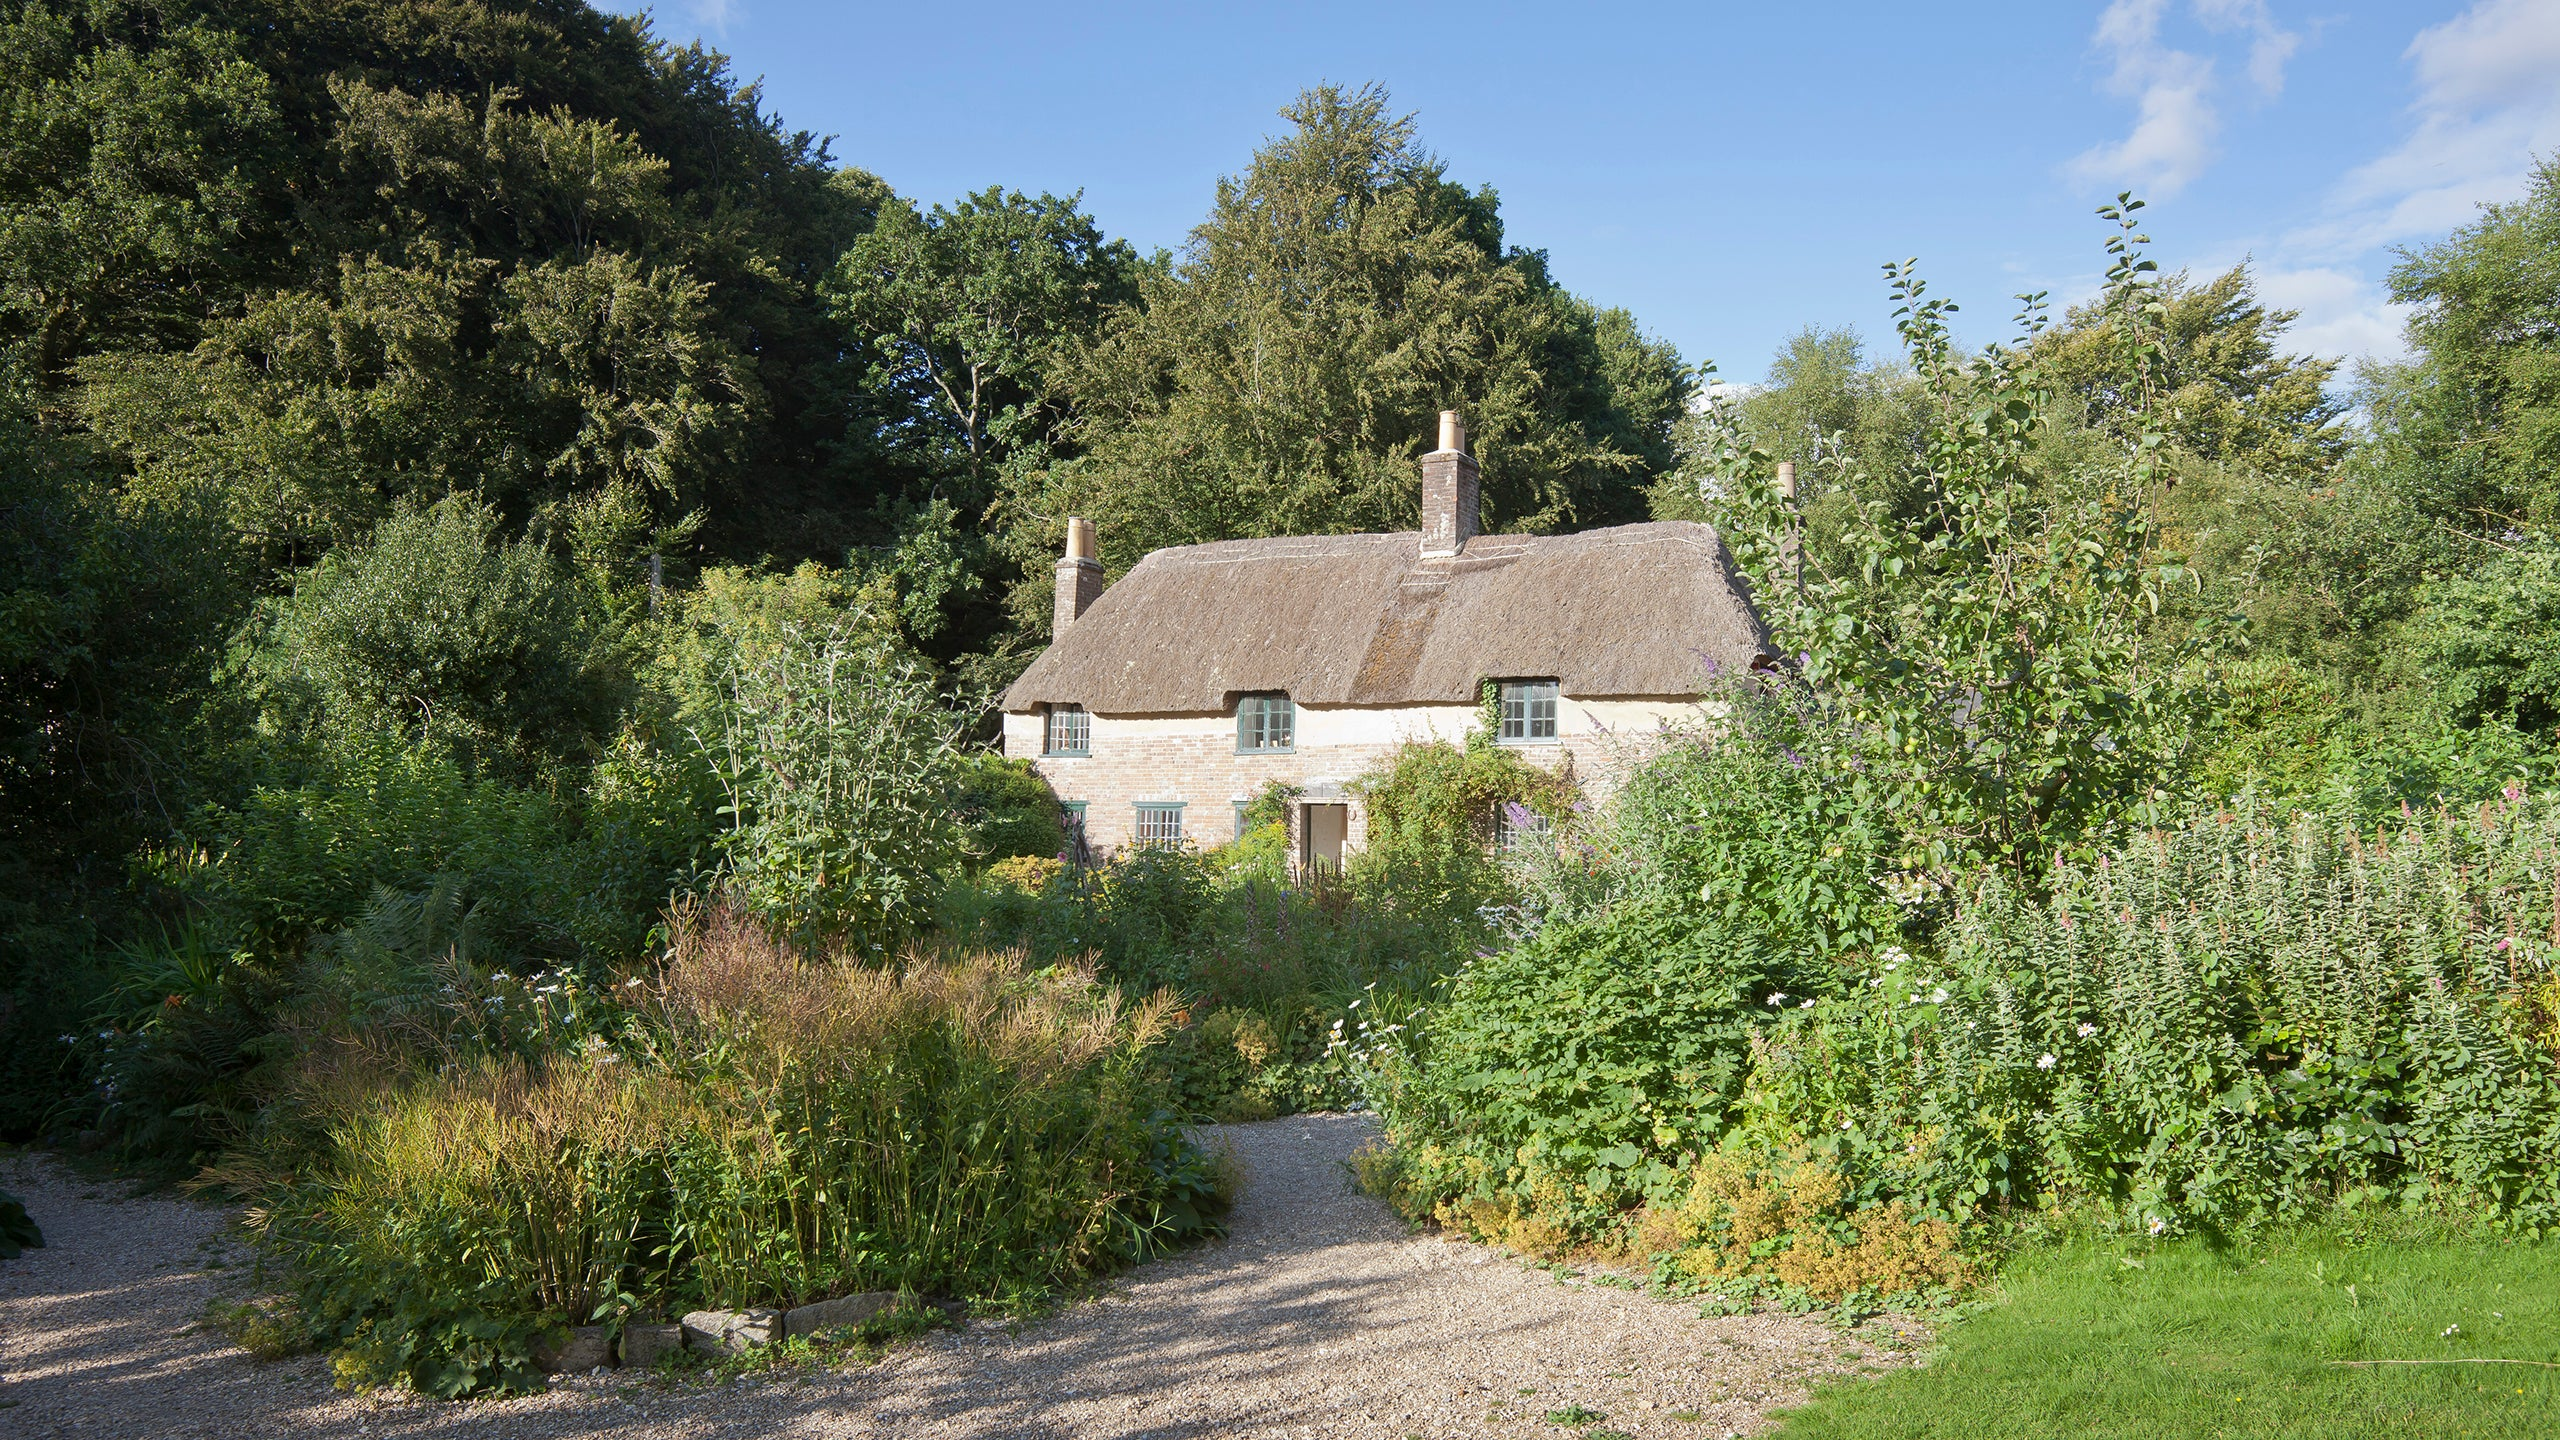 A view of the house from the garden at Hardy's Cottage, Dorset